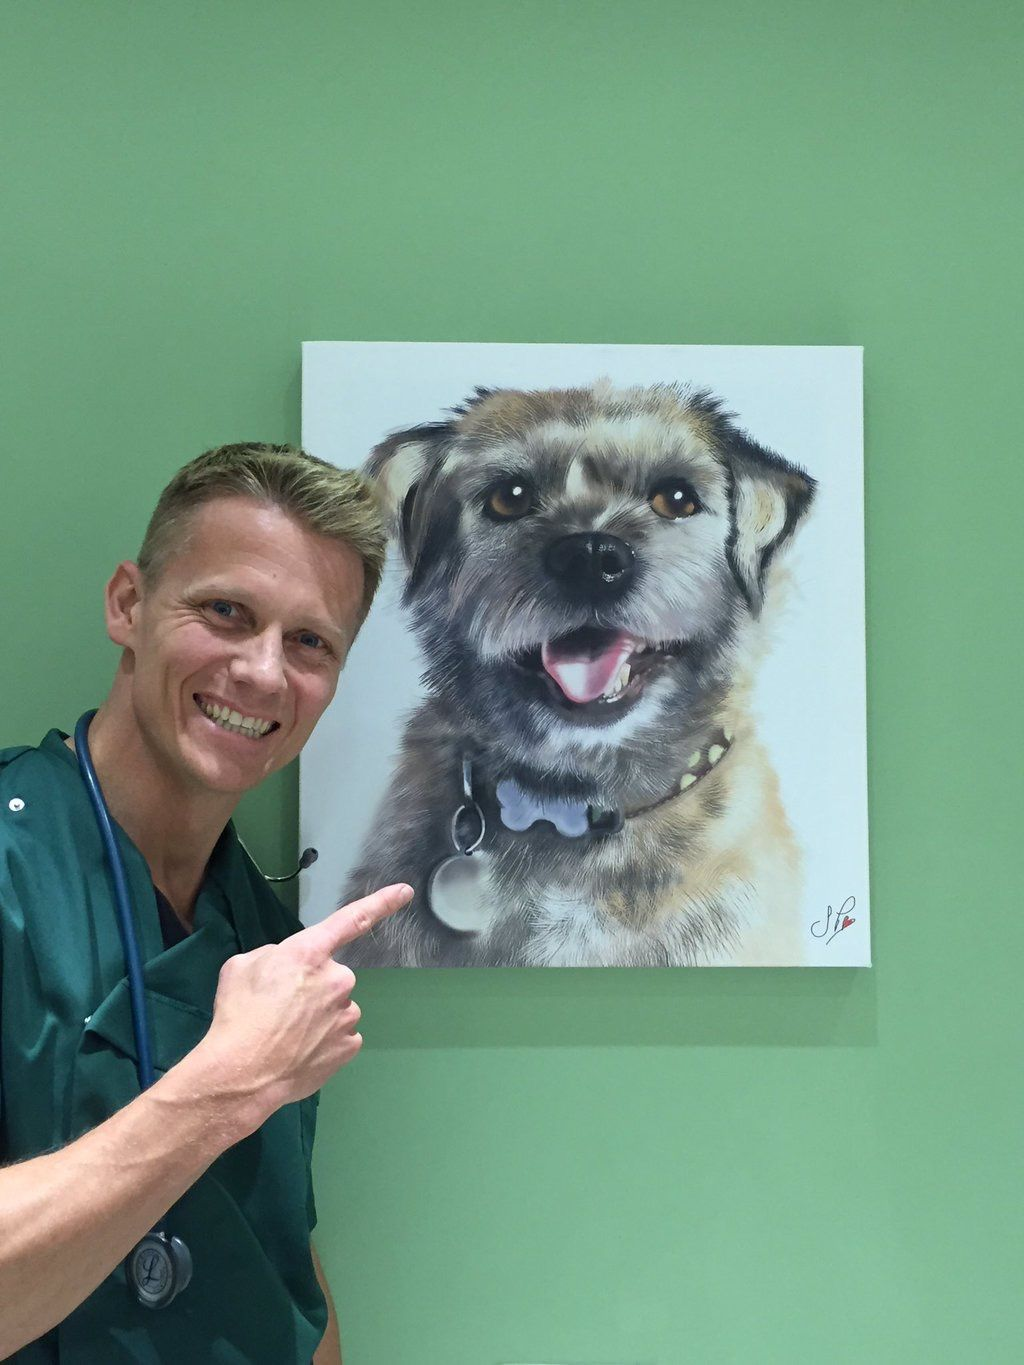 Dr Scott Miller From More4 Documentary Vet On The Hill With Our